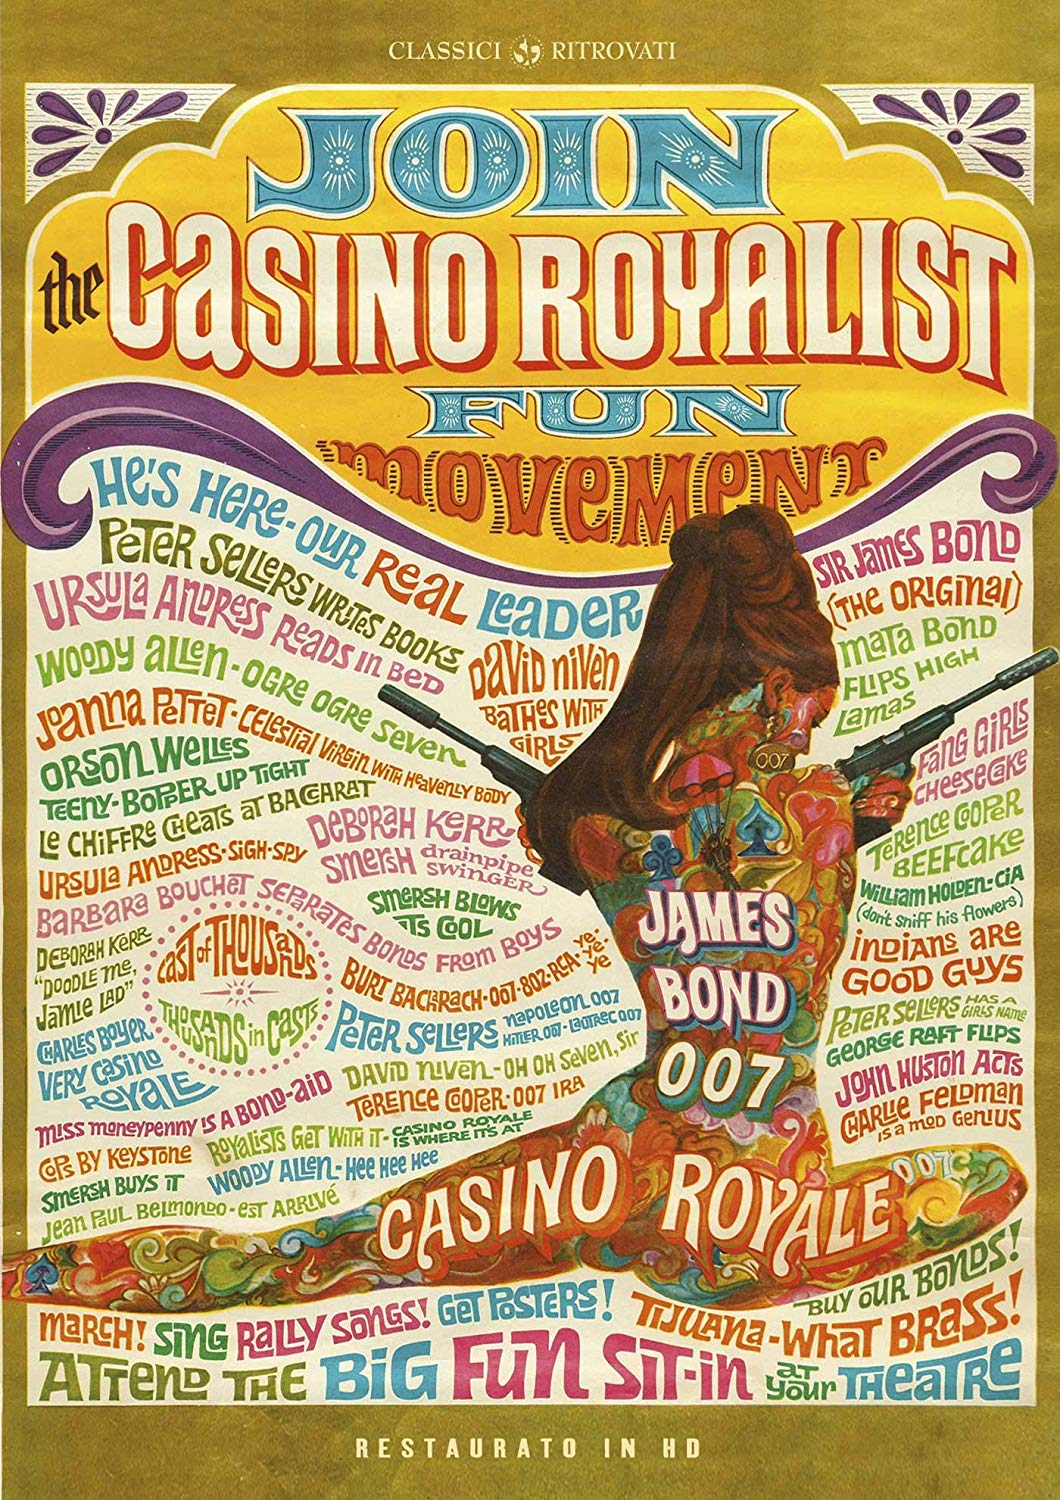 CASINO ROYALE (RESTAURATO IN HD) (DVD)